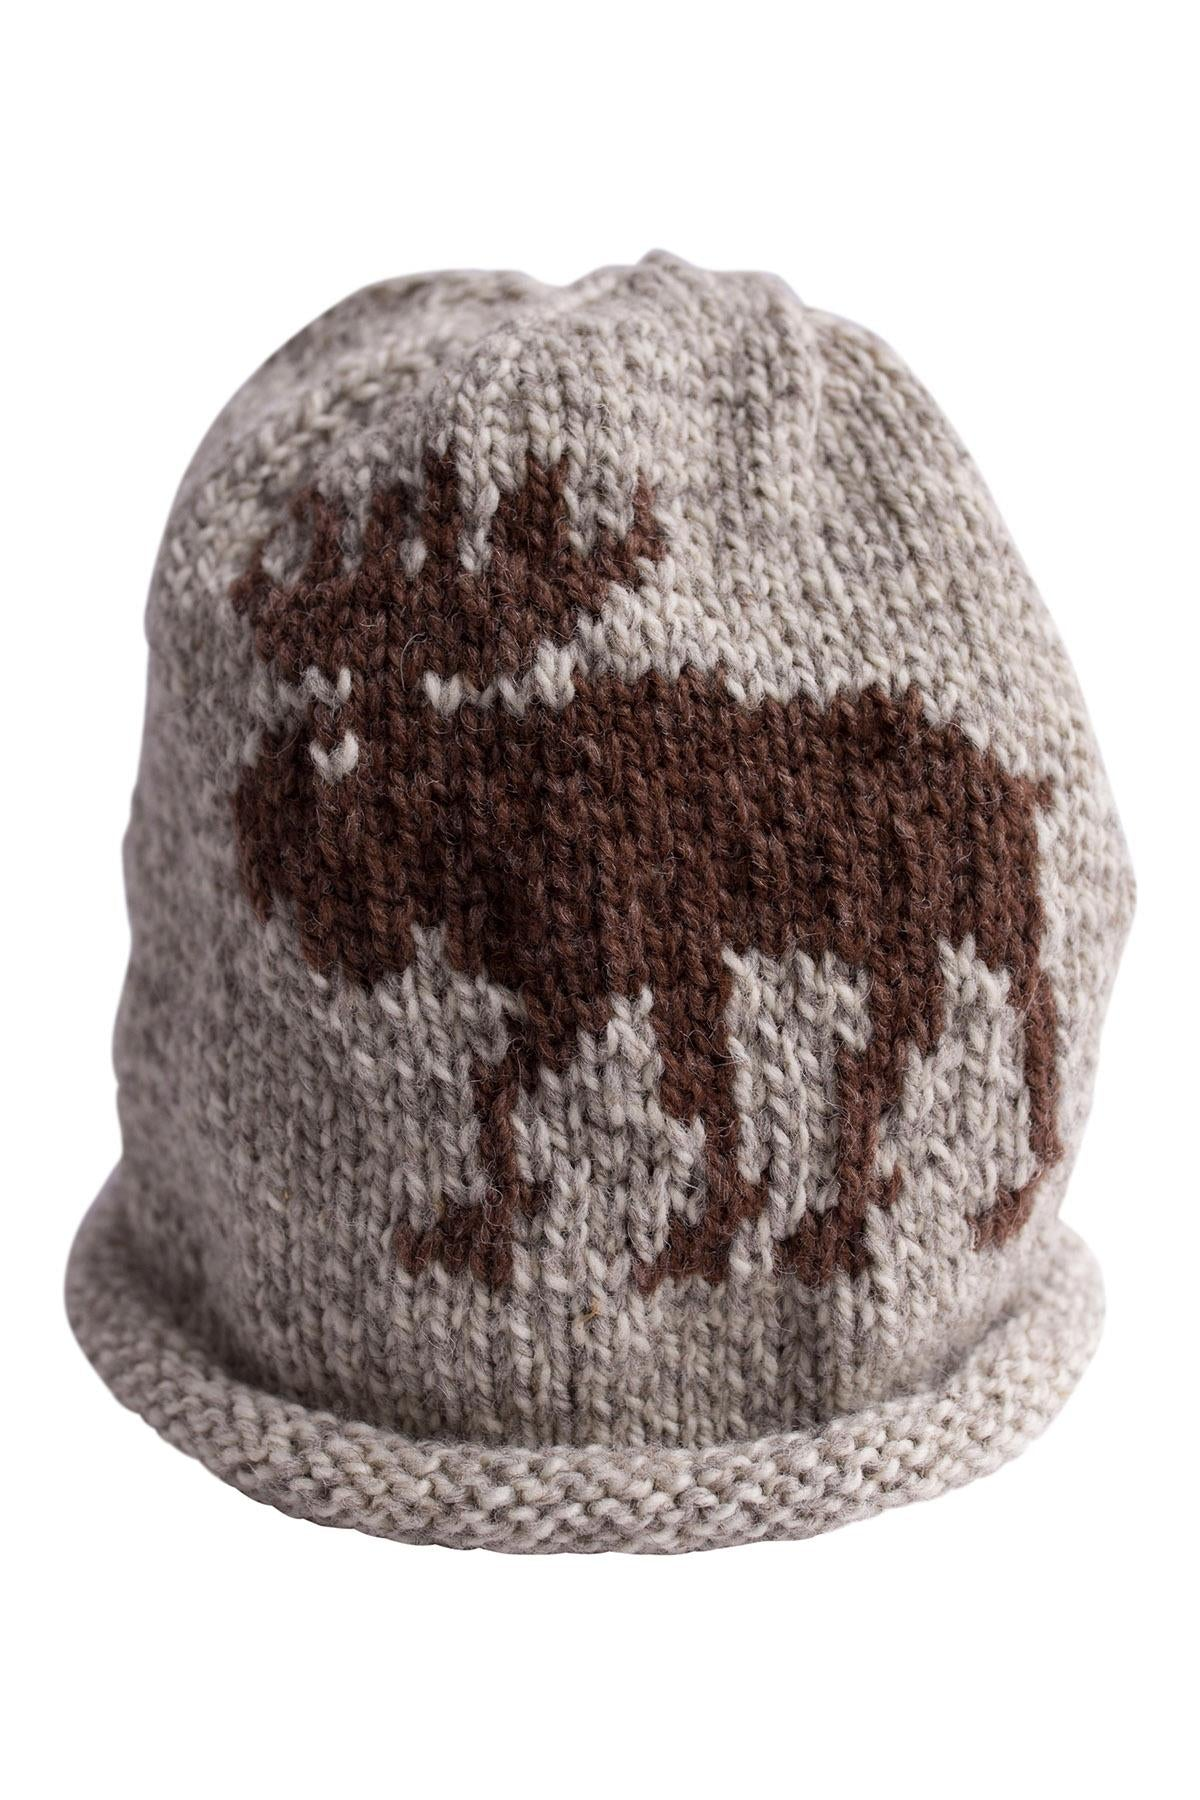 Ollie Doyle Moose Wool Hat | Newfoundland | Johnny Ruth